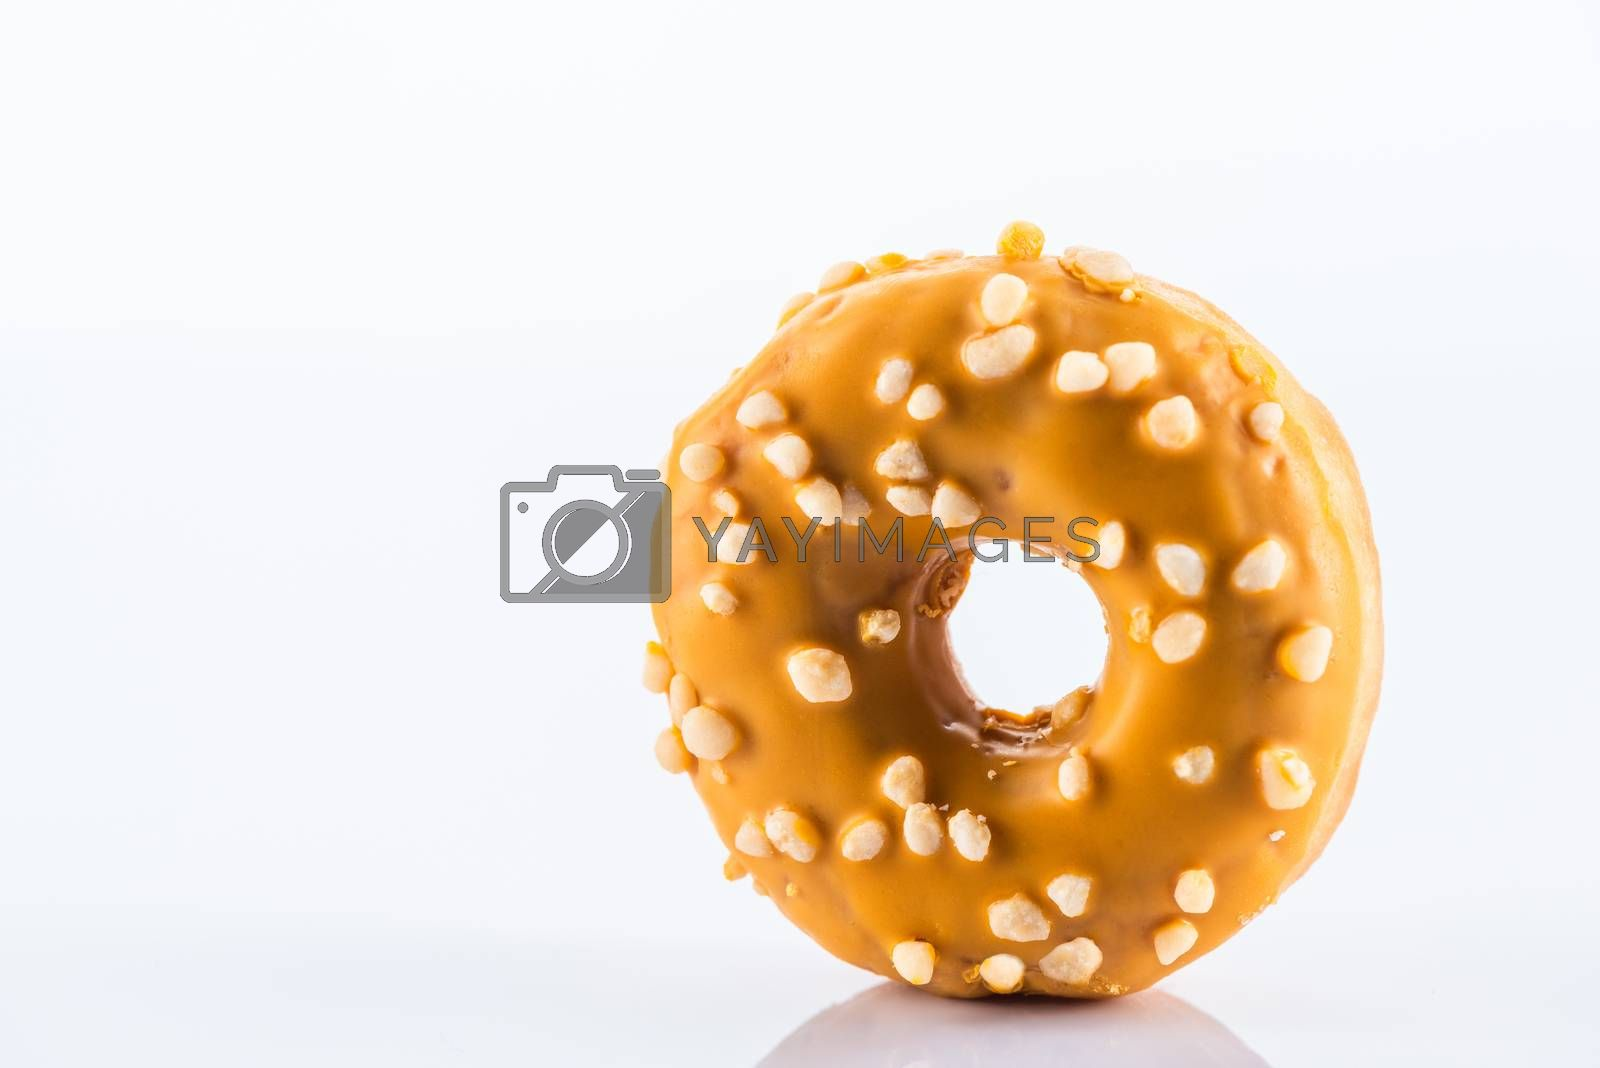 Single Salted Caramel Donut or Doughnut. Studio Photo on White Background, Close Up view.